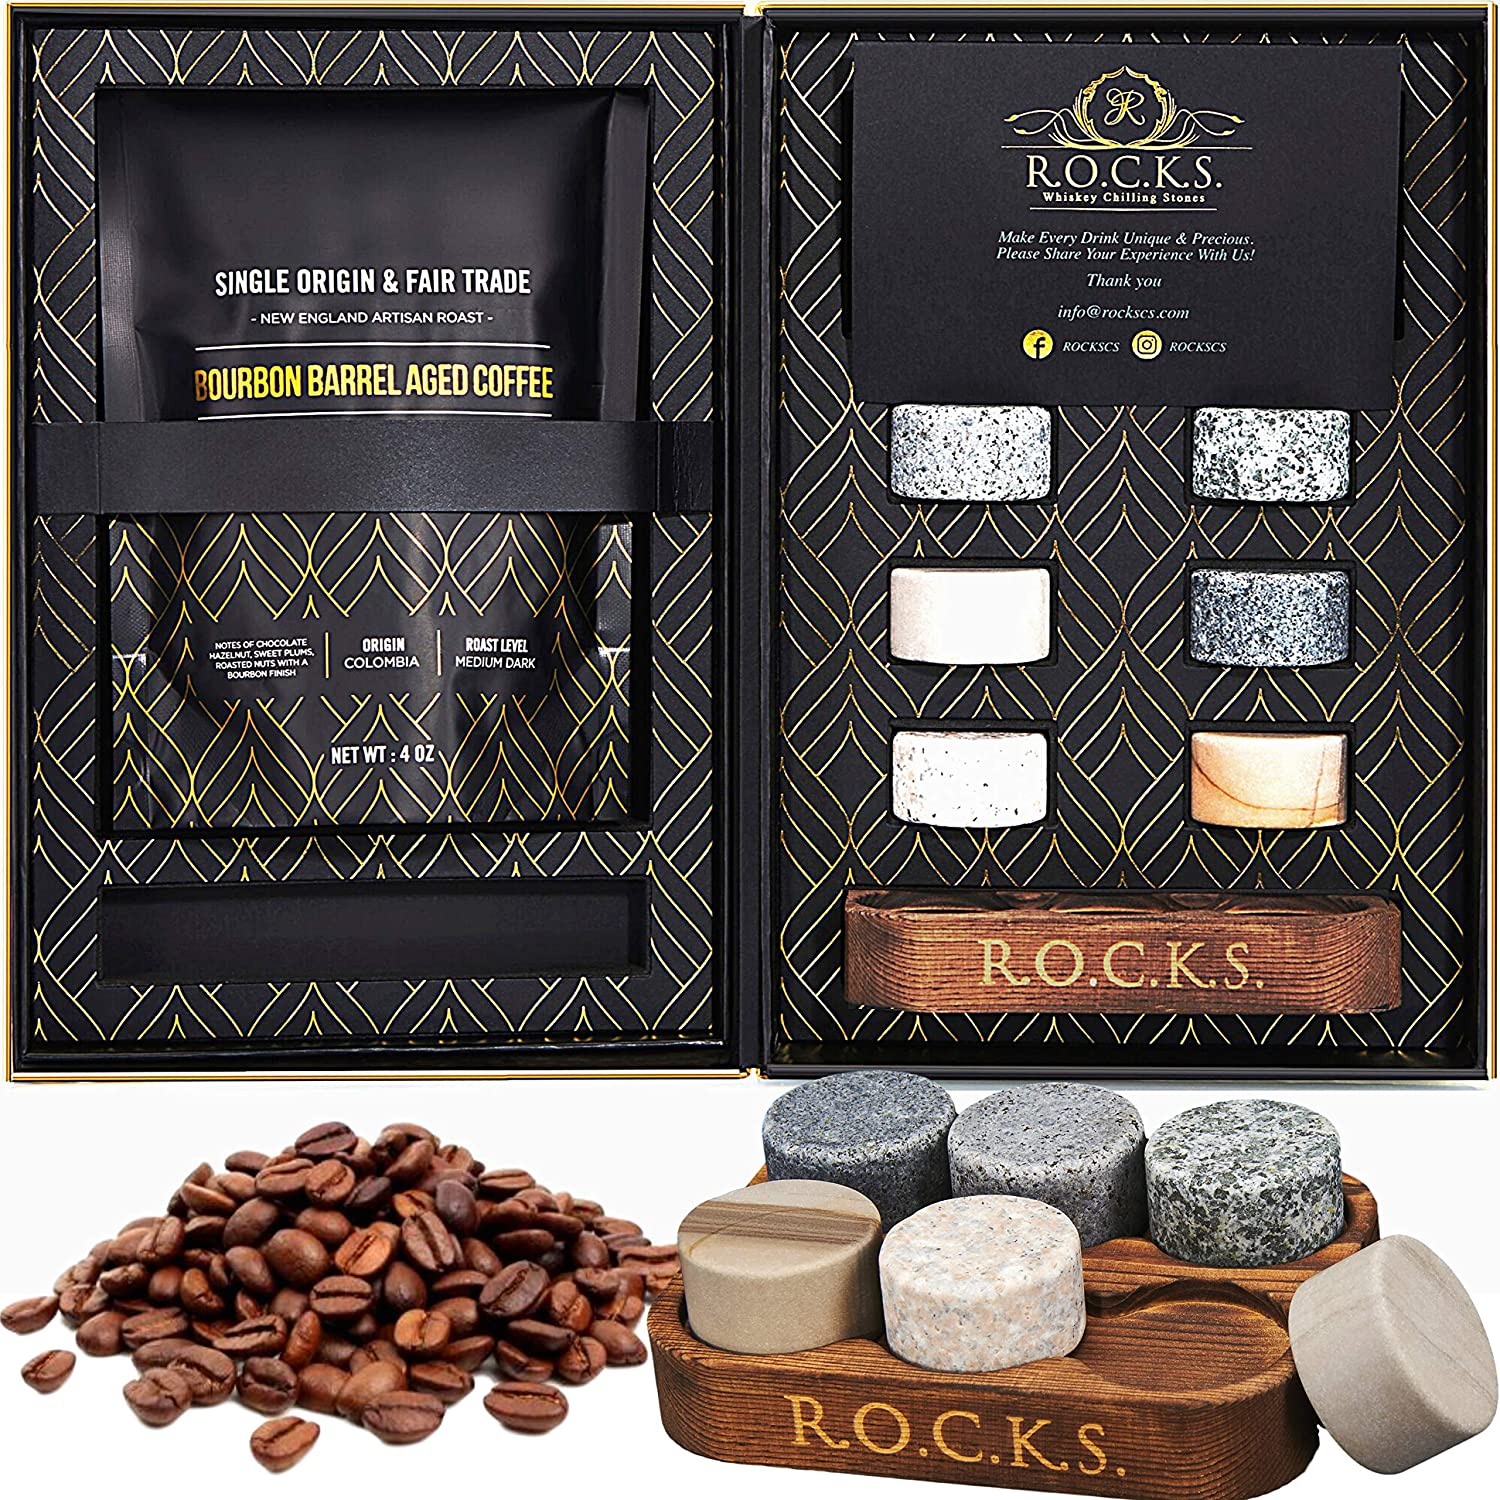 Whiskey Chilling Stones & Kentucky Bourbon Barrel Aged Coffee Gift Set - 6 Handcrafted Premium Granite Round Rocks & Hardwood Storage Tray - A Gourmet Tasting Discovery for Whiskey & Coffee Lovers!